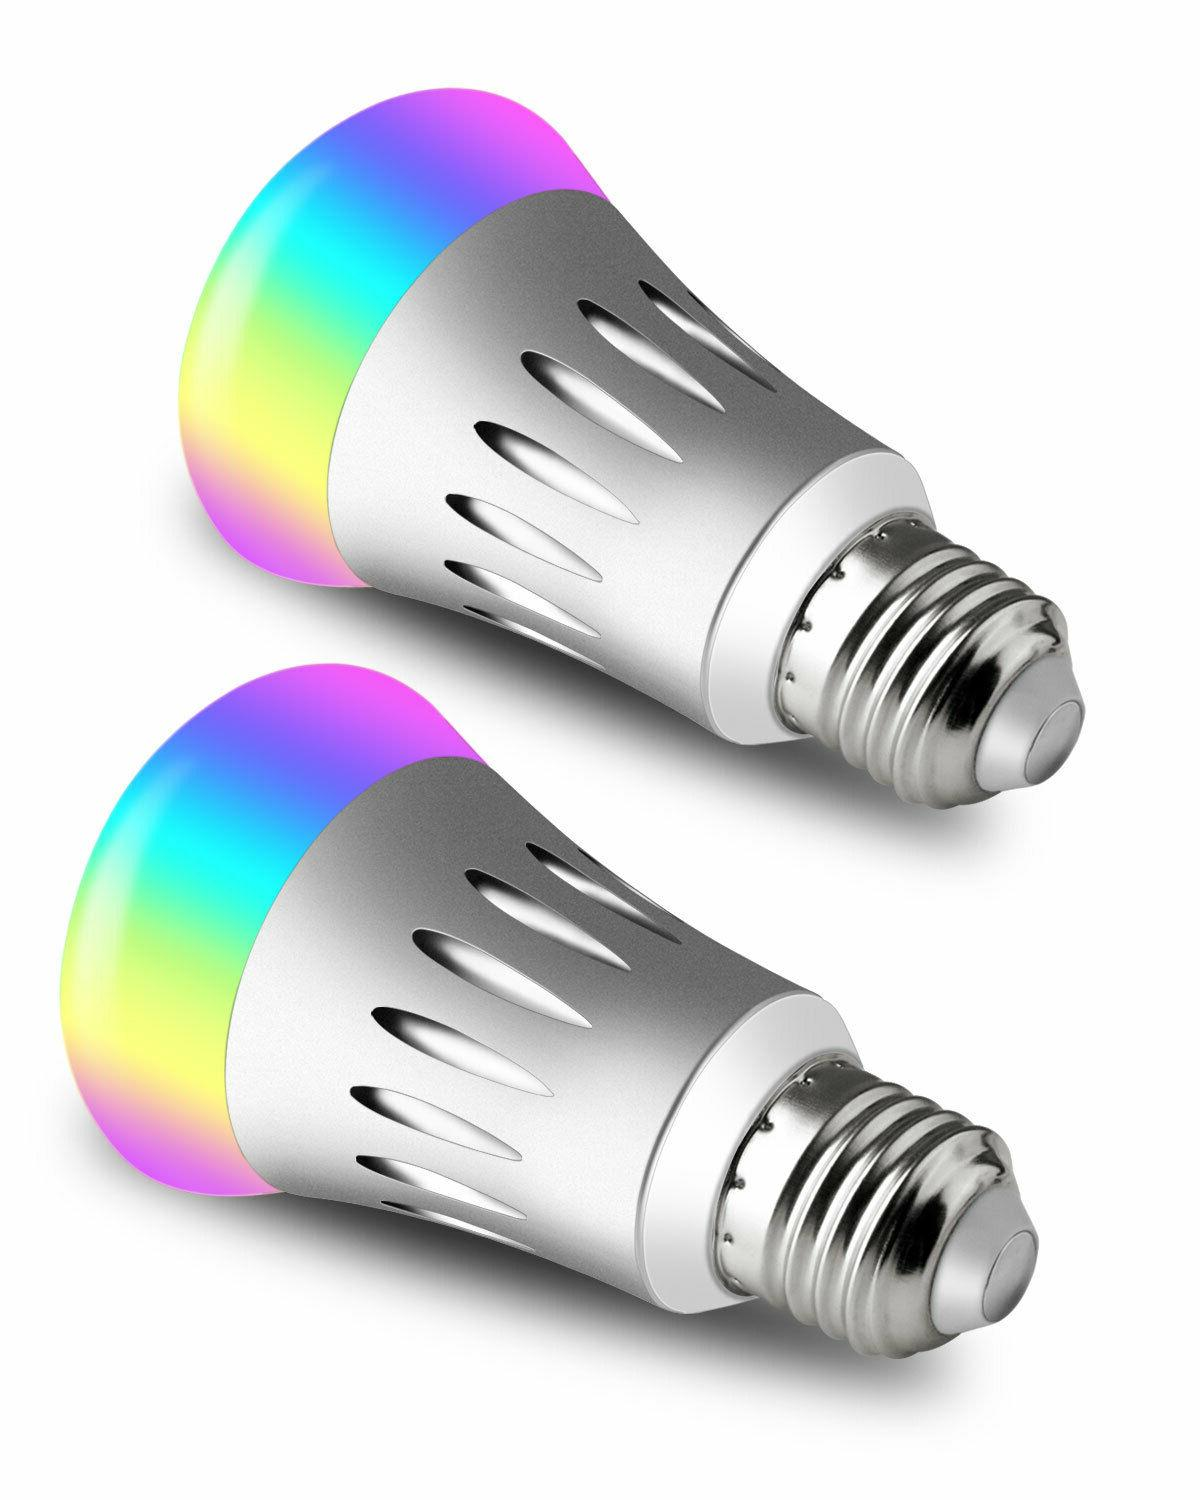 WiFi Bulbs Dimmable LED Switch For Google Home /Alexa/IFTTT